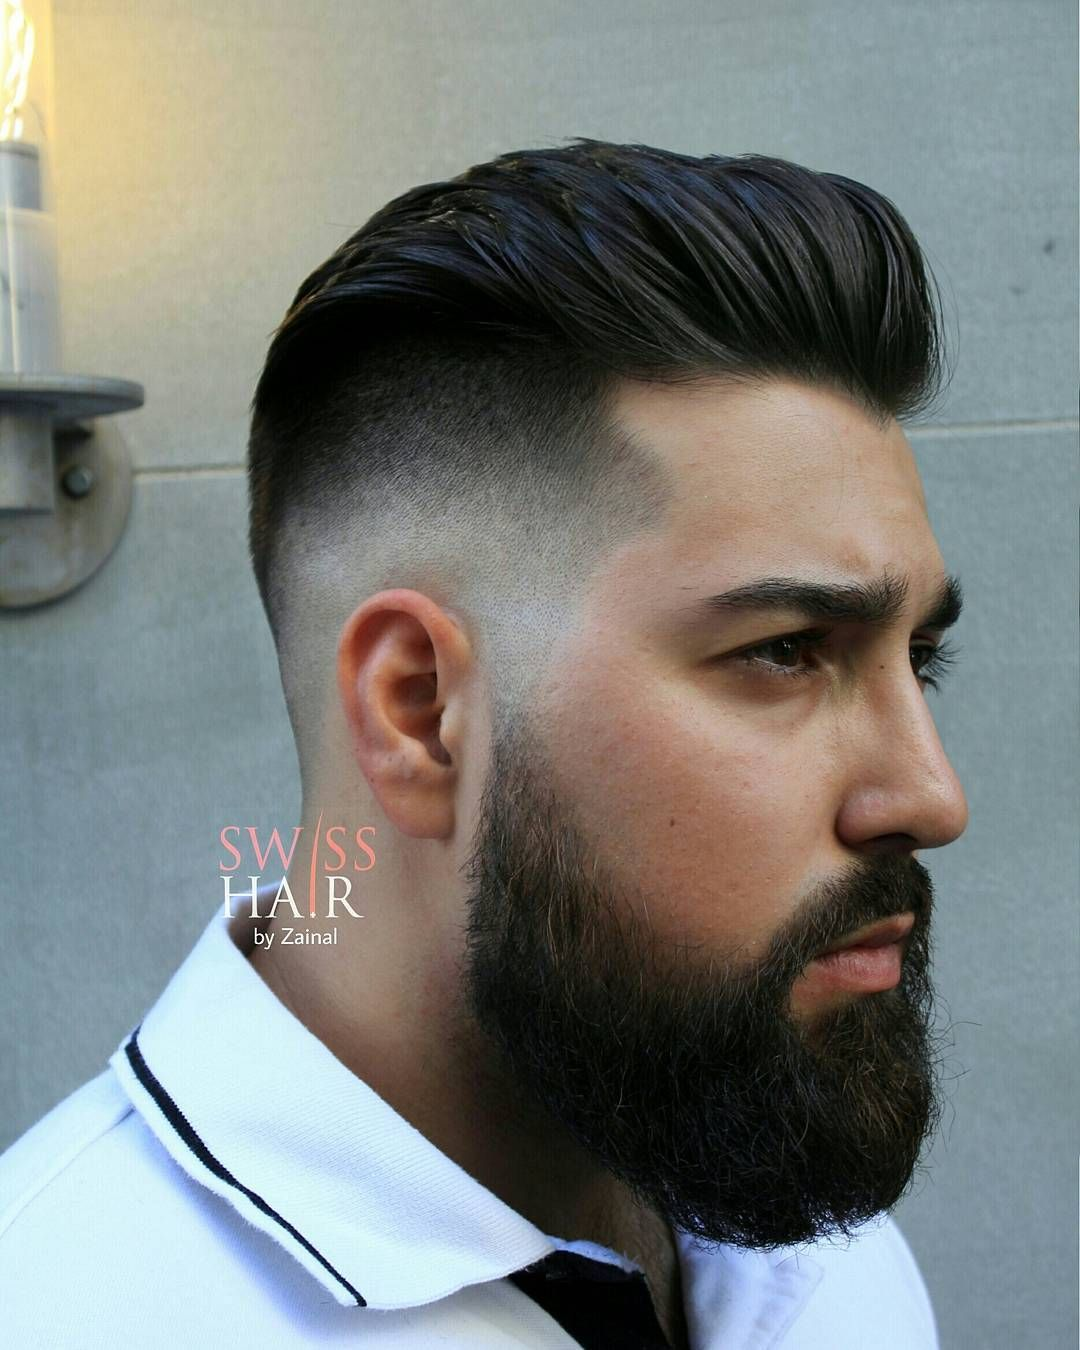 Hairstyles For Thick Hair Men Captivating 15 New Haircuts  Hairstyles For Men With Thick Hair  Pompadour